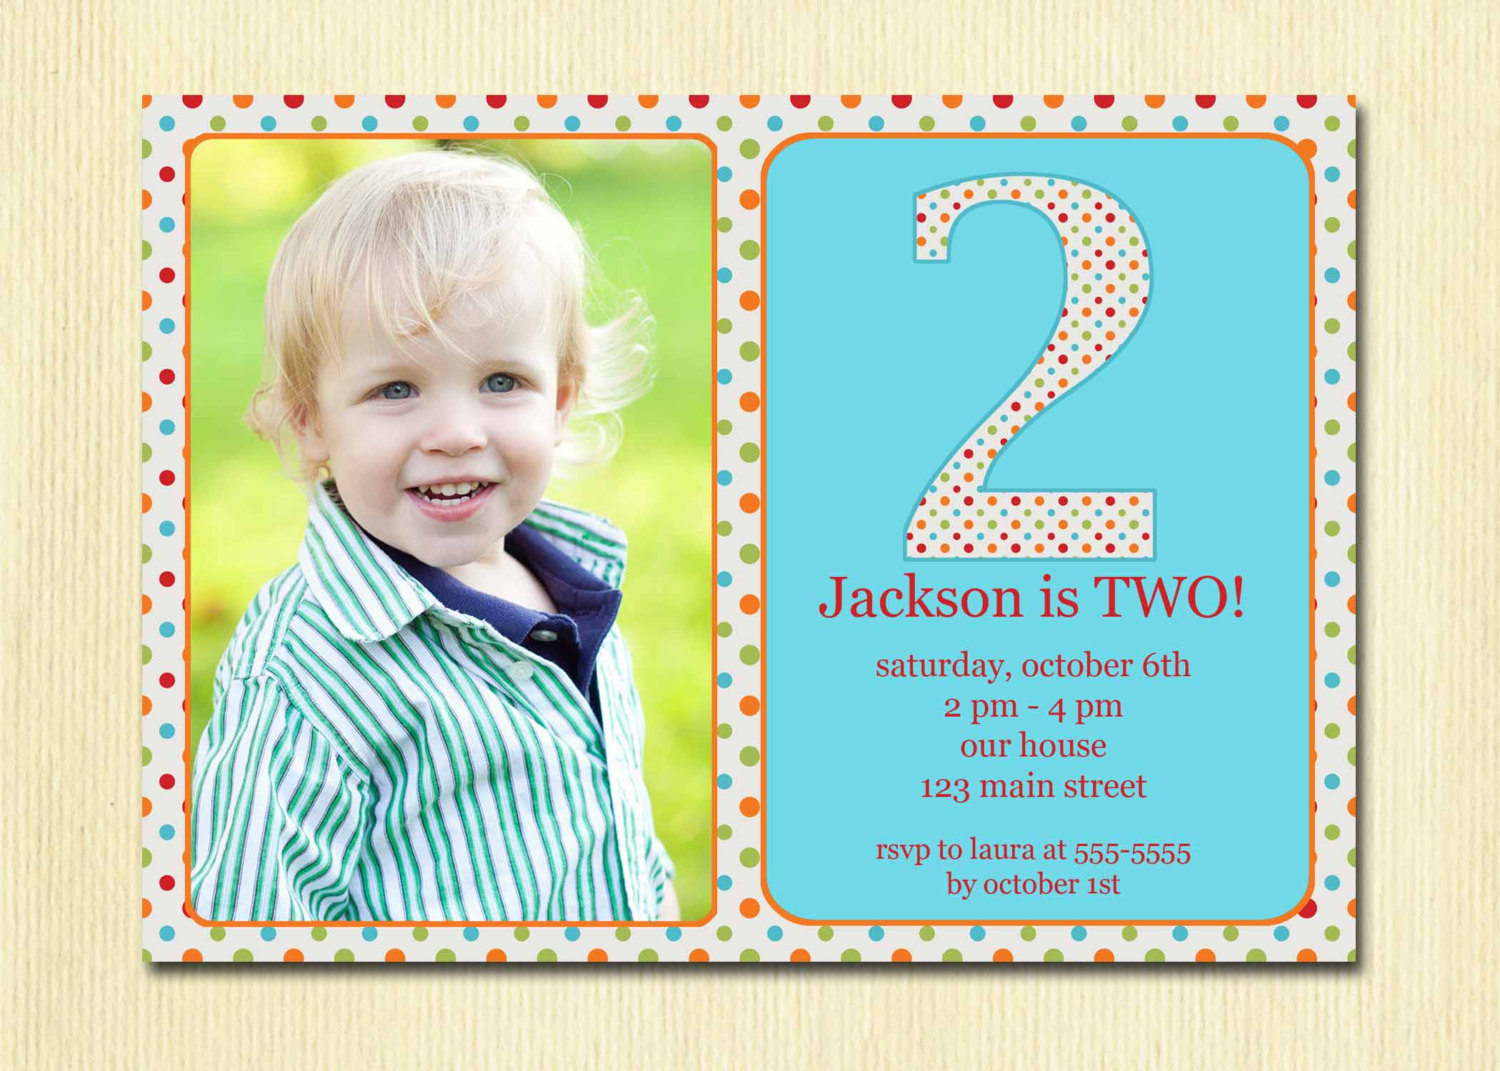 Toddler 2 Years Old Birthday 2 Year Old Birthday Party Invitation Wording Dolanpedia